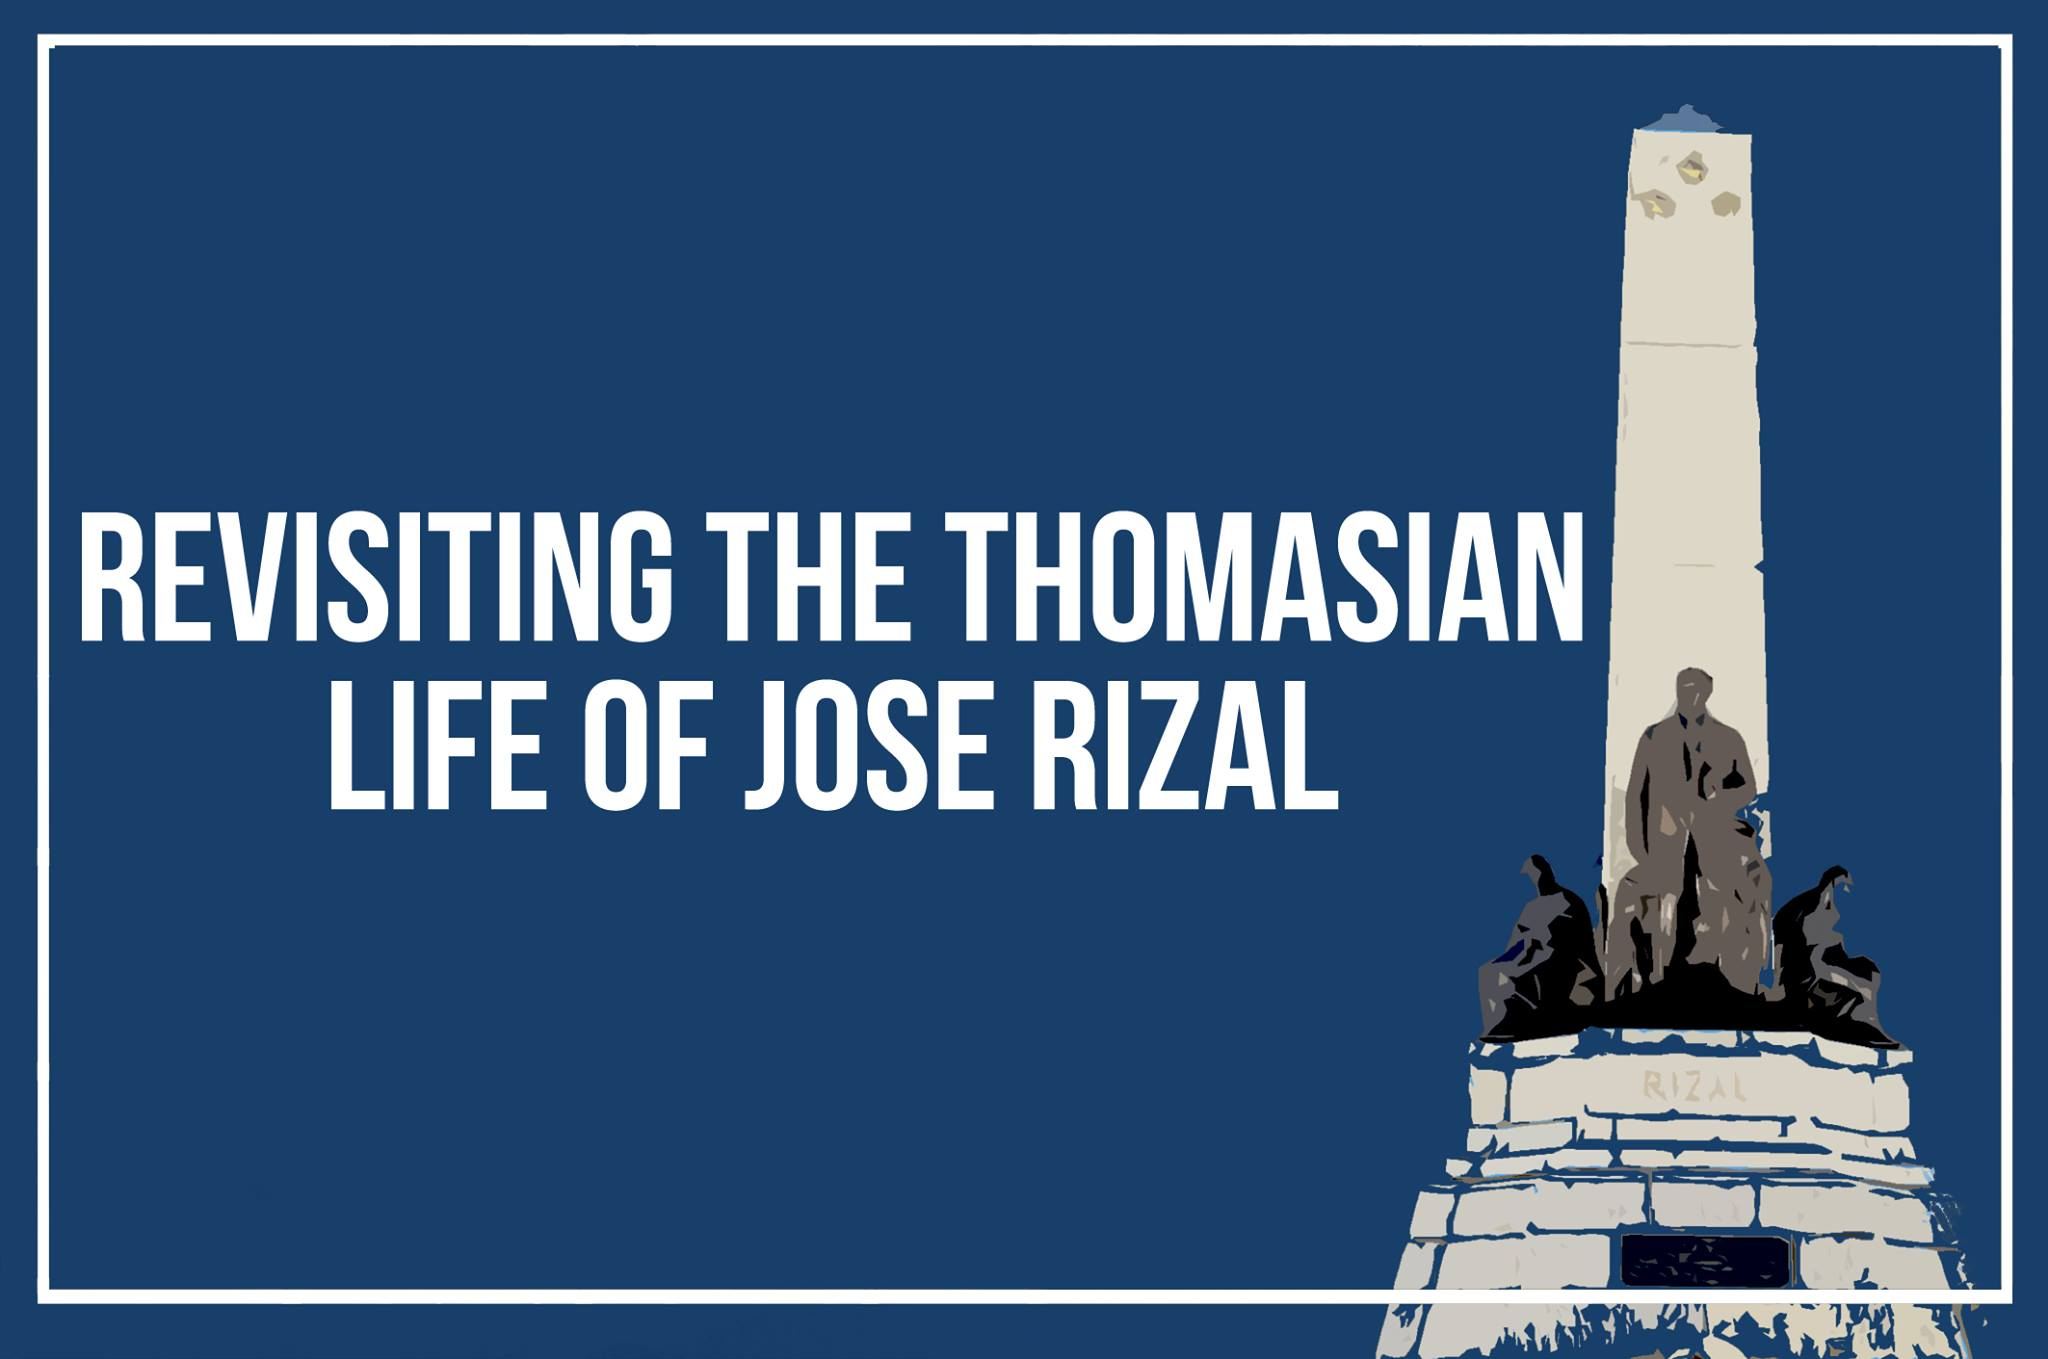 Revisiting the Thomasian Life of Jose Rizal